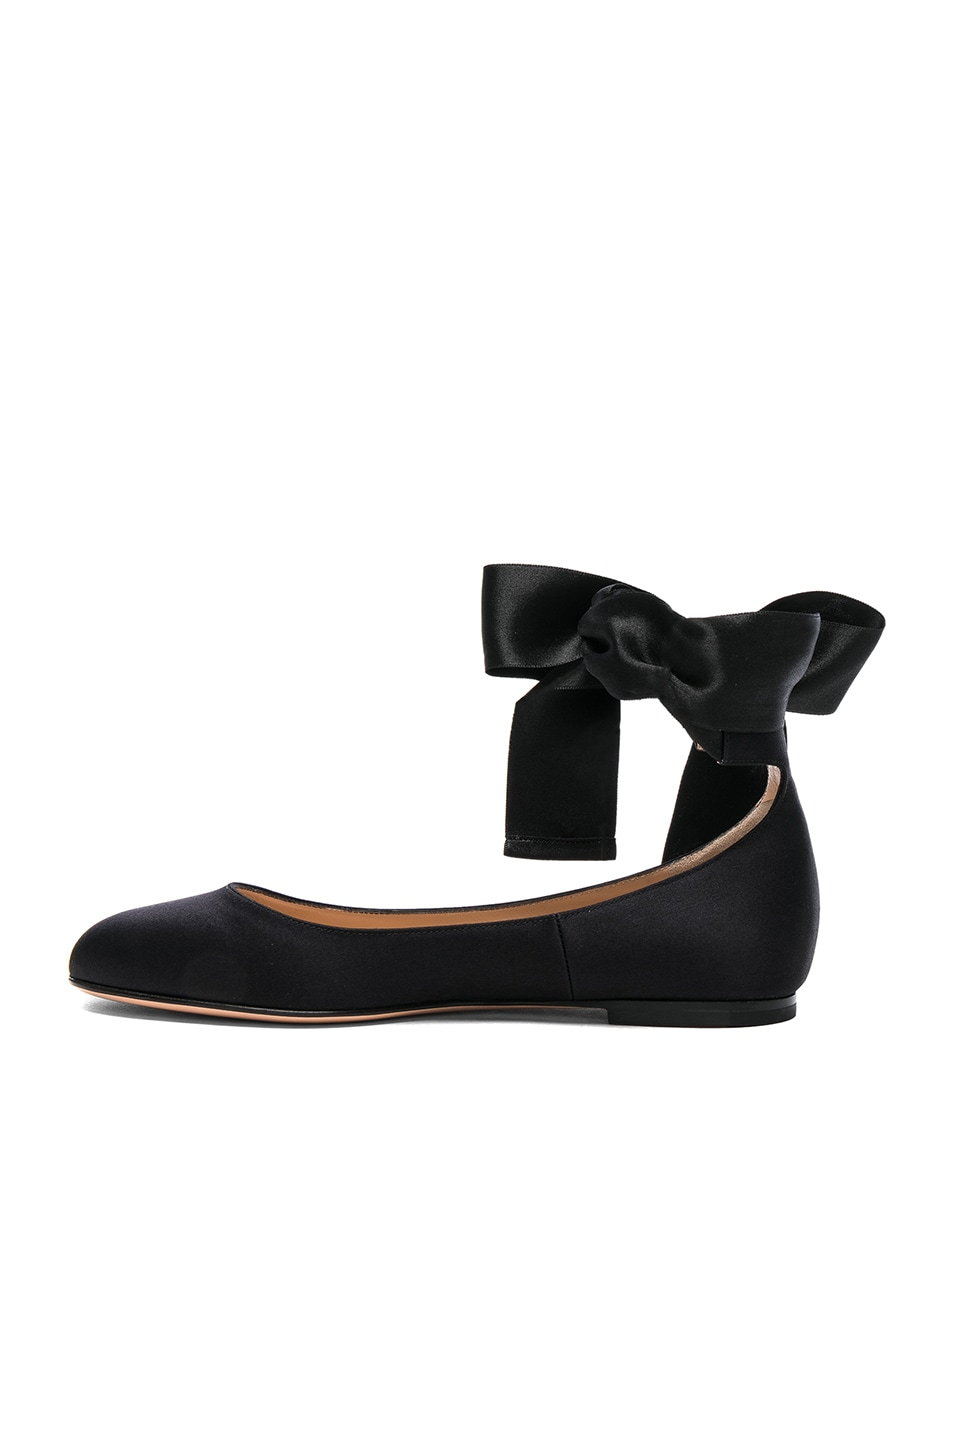 Image 5 of Gianvito Rossi Satin Ankle Tie Flats in Black